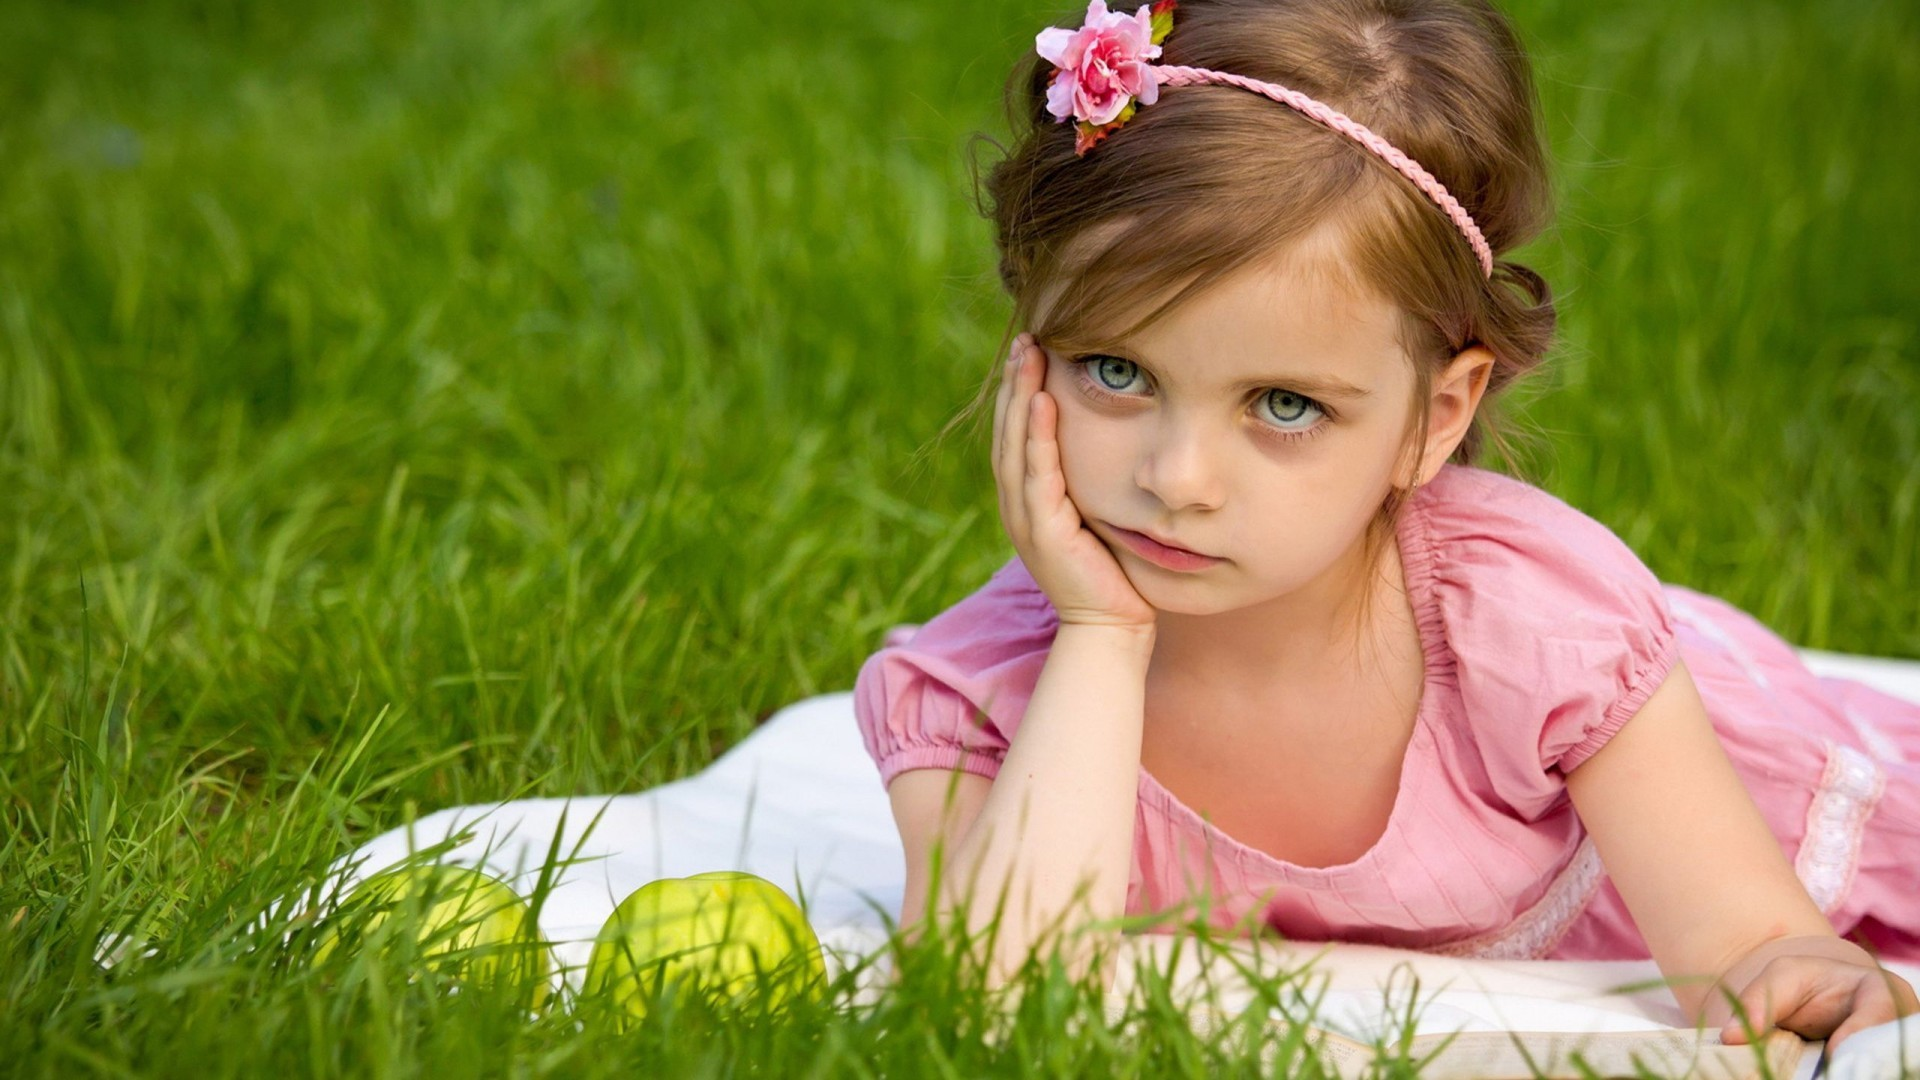 Beautiful Babies Wallpapers 2018 65 Images